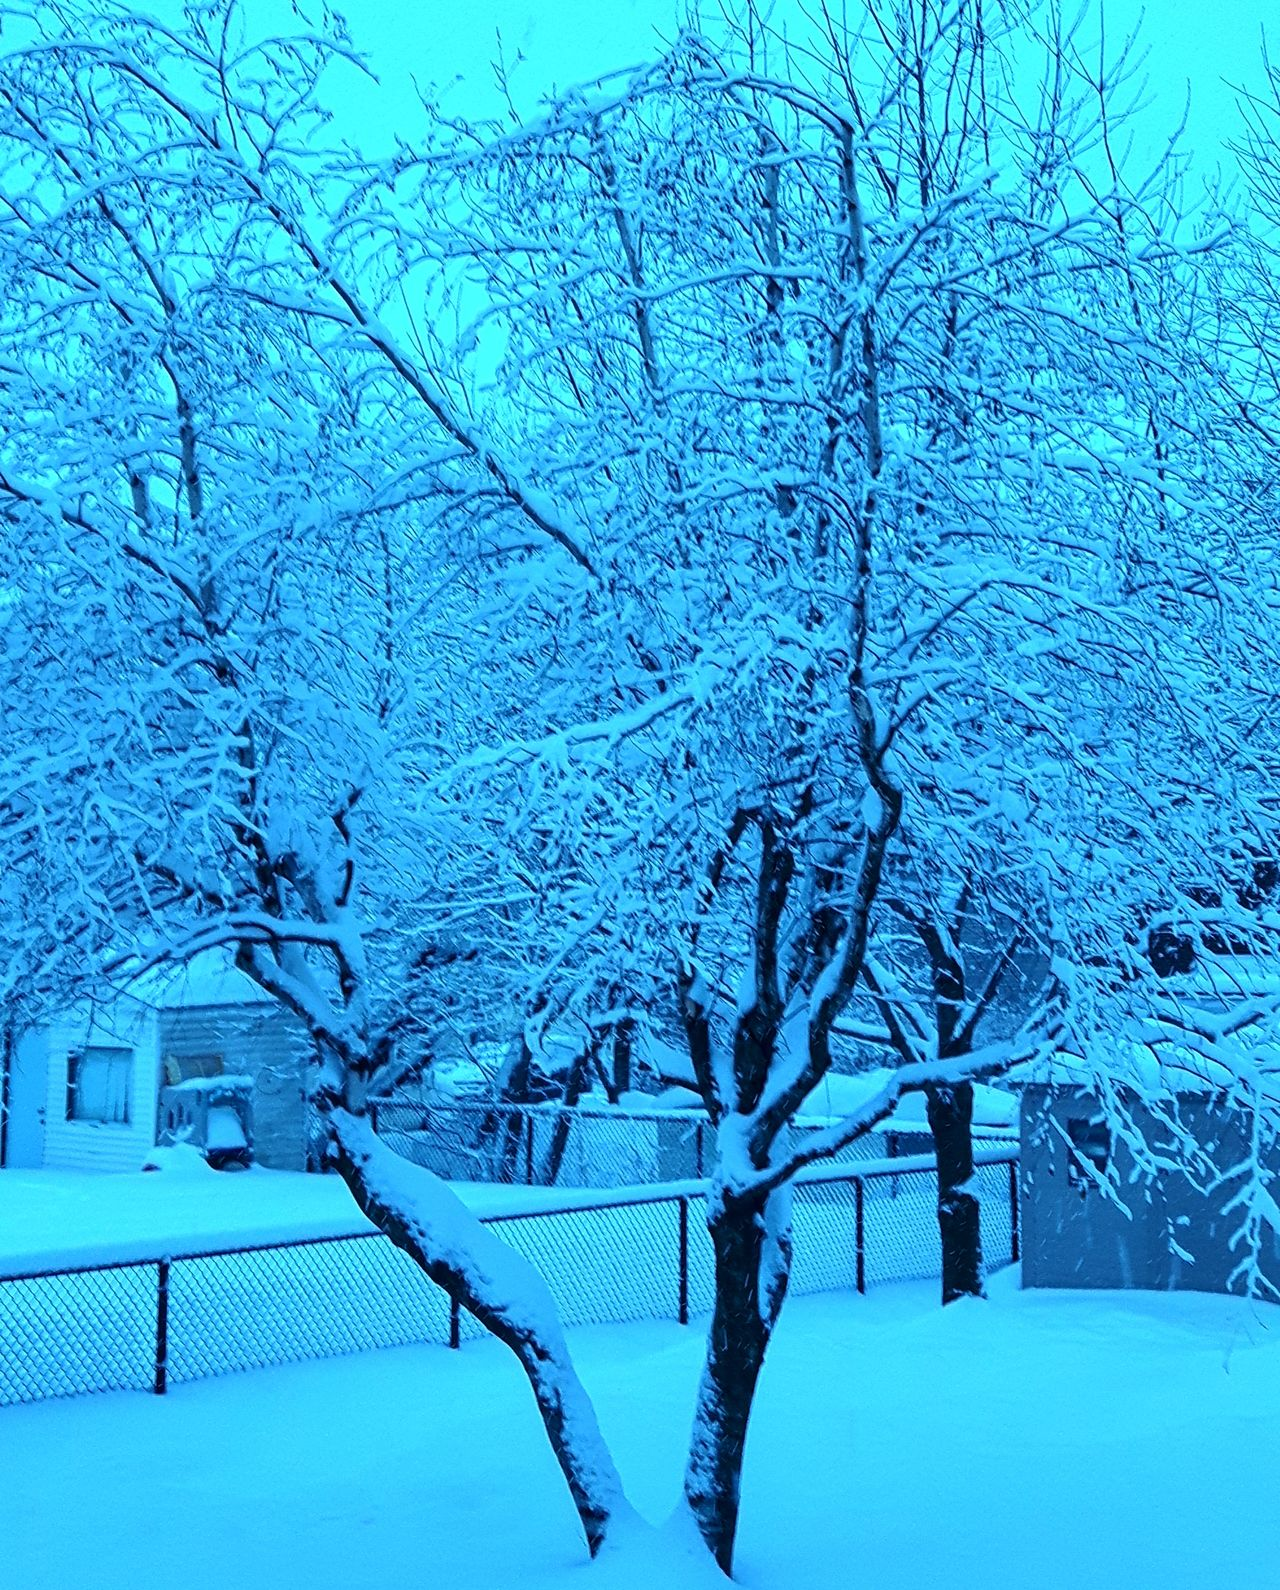 Tree Nature Blue Beauty In Nature Outdoors Snow Cold Temperature Tranquility Day Winter Granby Frozen Canton De L'Est The City Light Cold Cold Days Canada Snow Covered Beauty In Nature Quebec, Canada Colors